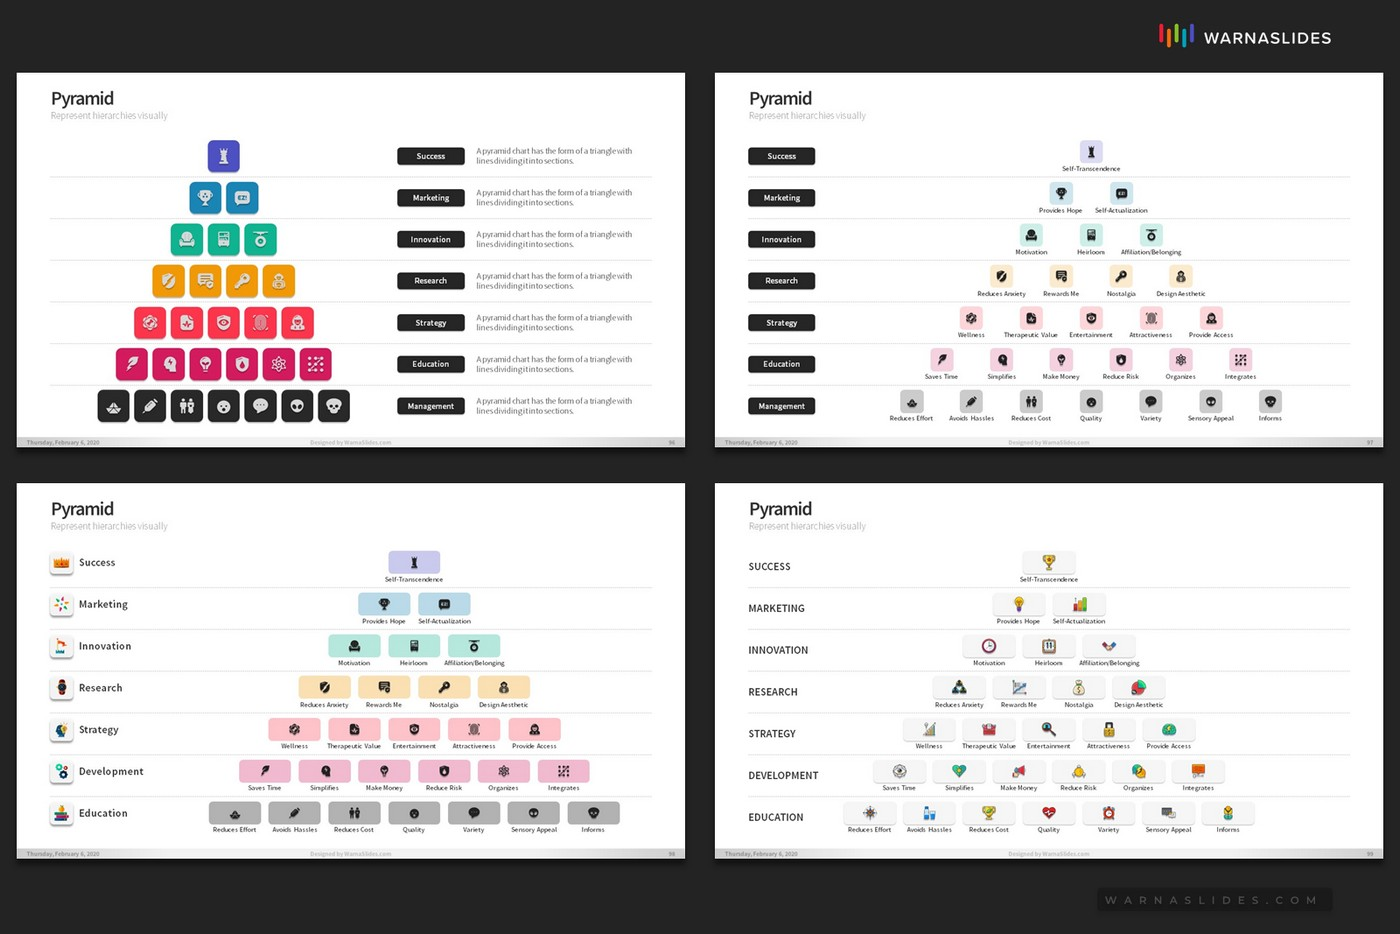 Pyramid-Hierarchy-Diagram-PowerPoint-Template-for-Business-Pitch-Deck-Professional-Creative-PowerPoint-Icons-025